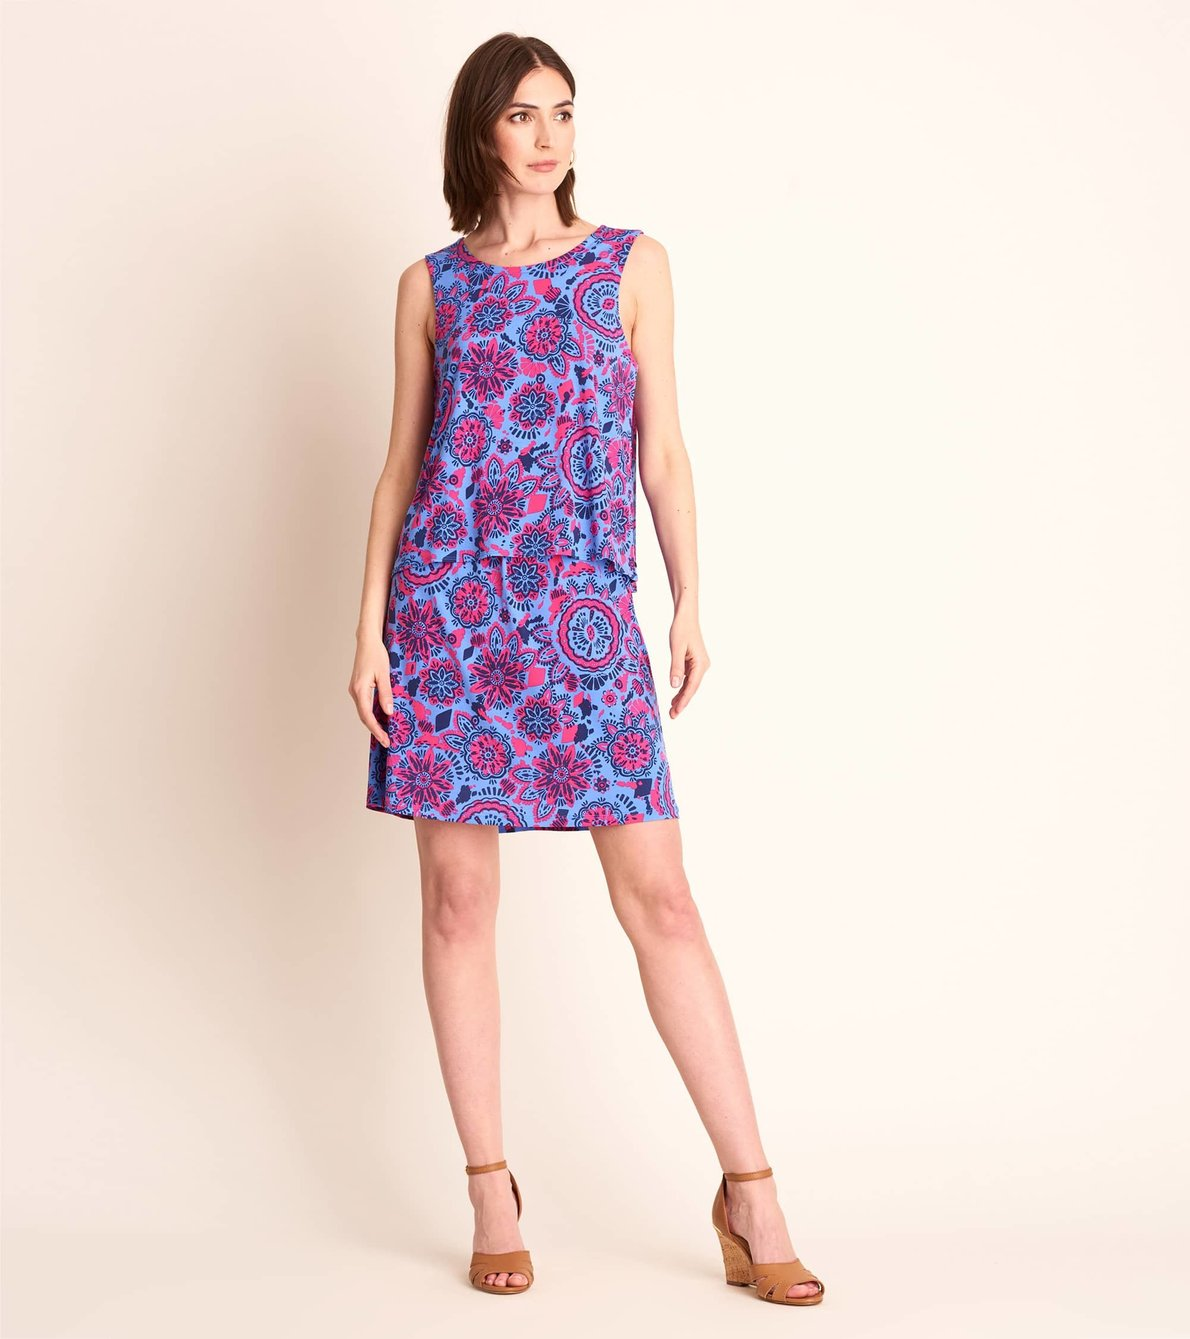 View larger image of Roberta Dress - Mandala Flowers